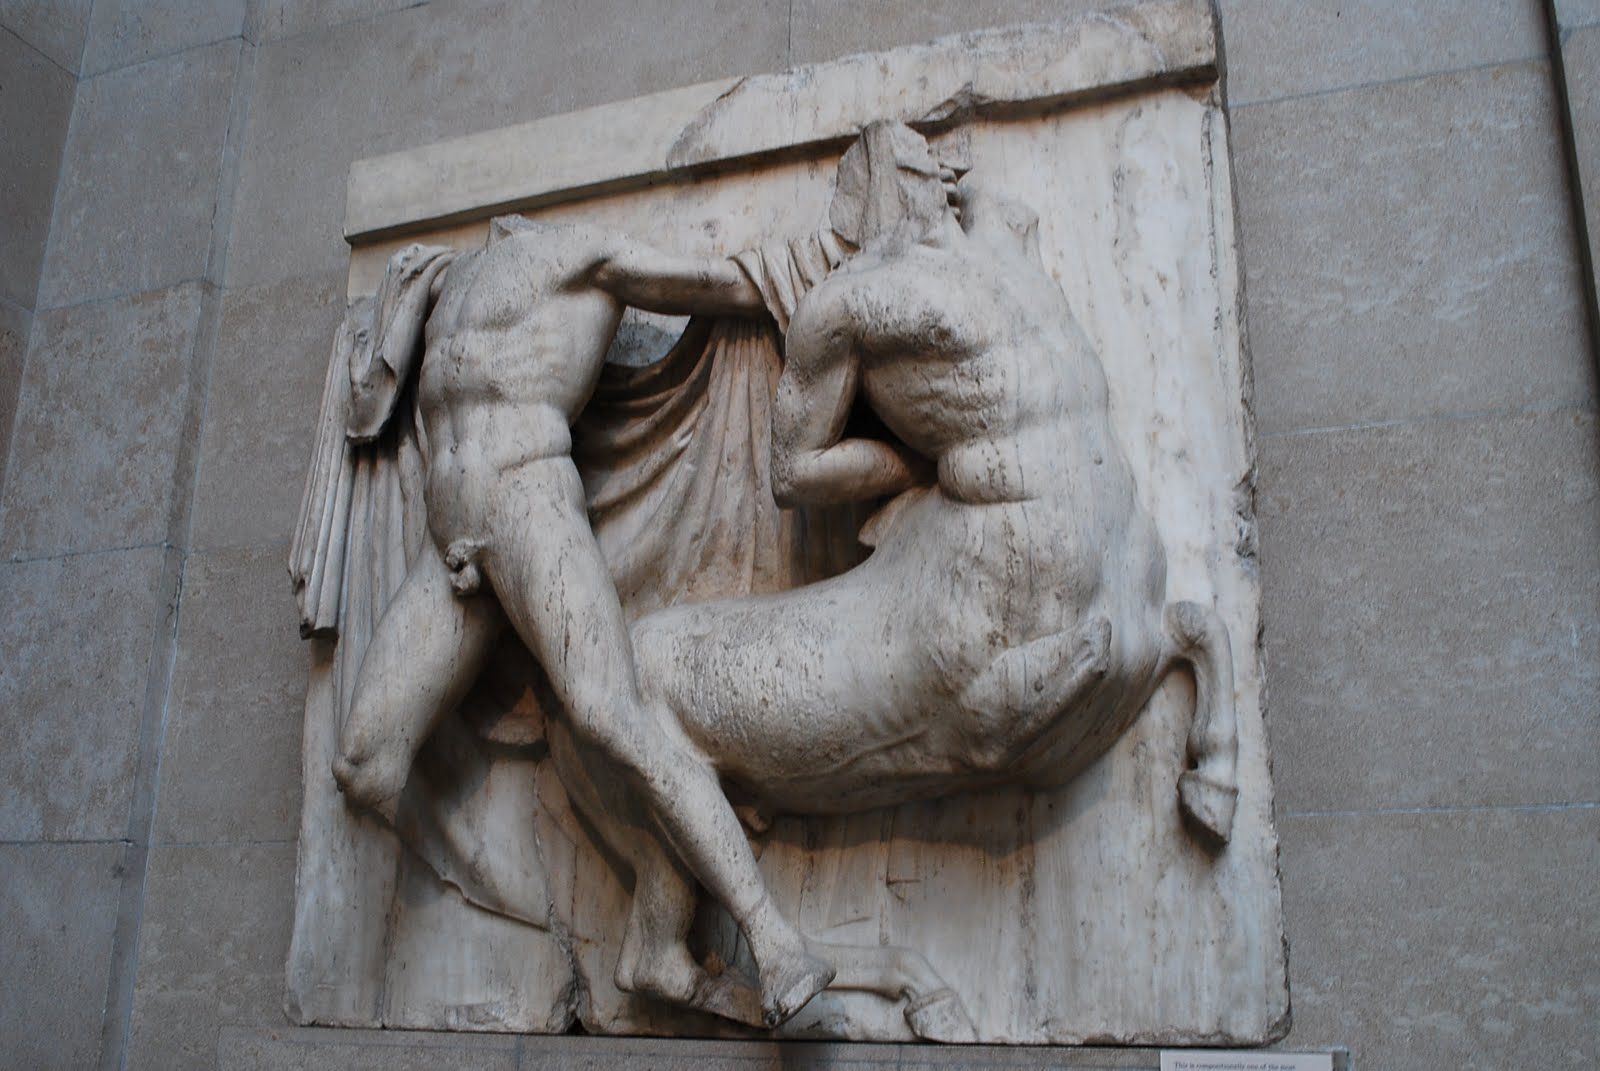 elgin marbles debate Elgin marbles debate in 1999, jenkins was asked to comment over a debate concerning the damage done to the elgin marbles  [1] he was quoted as saying, the british museum is not infallible, it is not the pope.